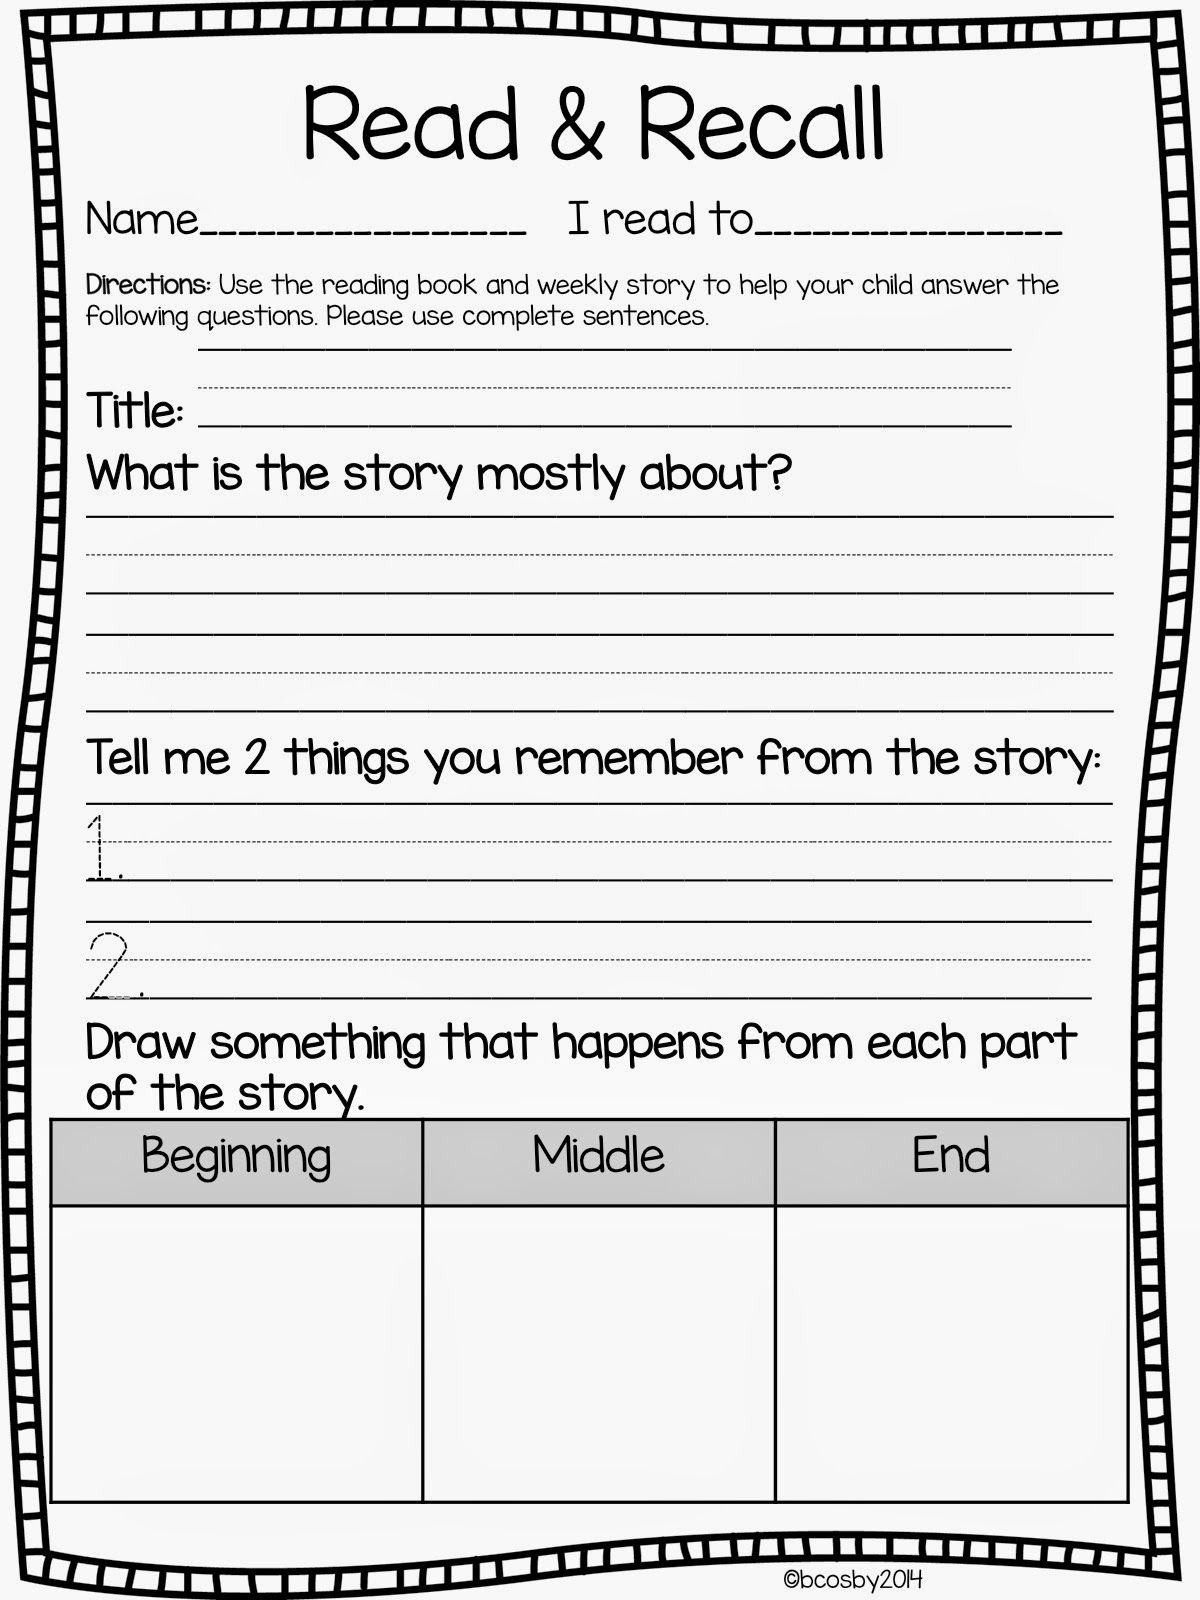 Story Retell Worksheet 2nd Grade   Printable Worksheets and Activities for  Teachers [ 1600 x 1200 Pixel ]